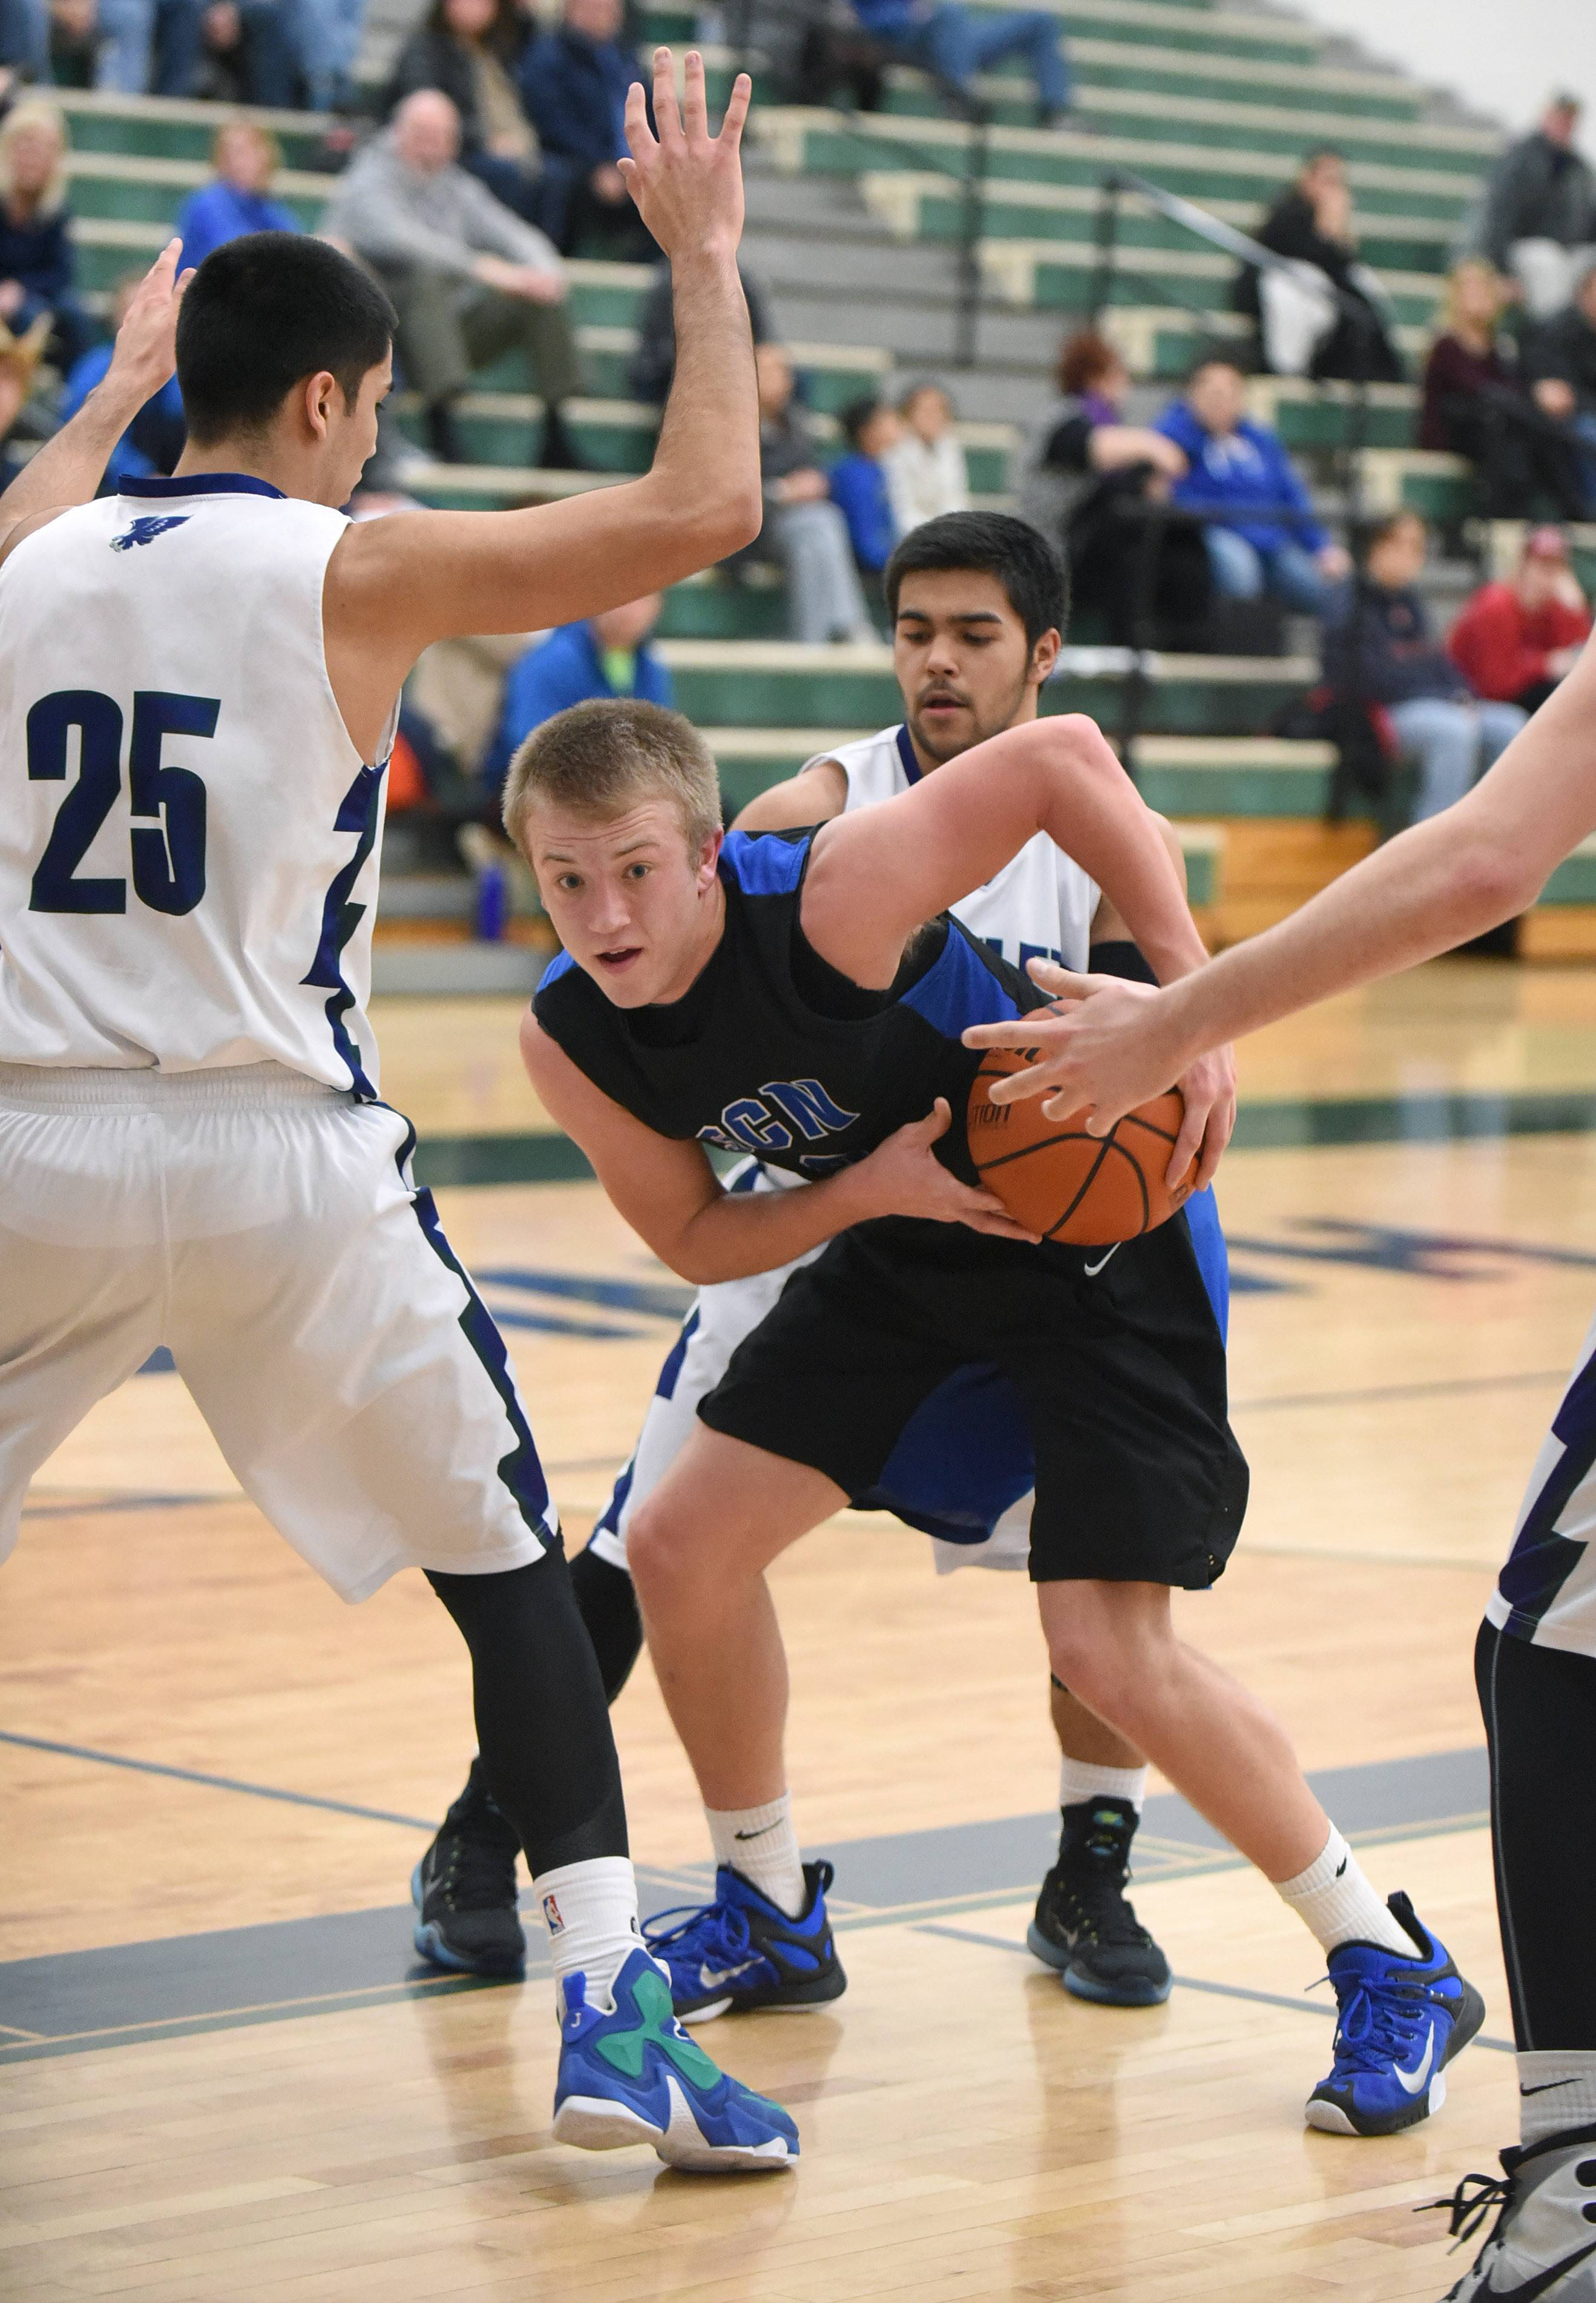 St. Charles North's Jake Spaniol looks to get past a screen by Bartlett's Robby Jimenez in the third quarter Wednesday.